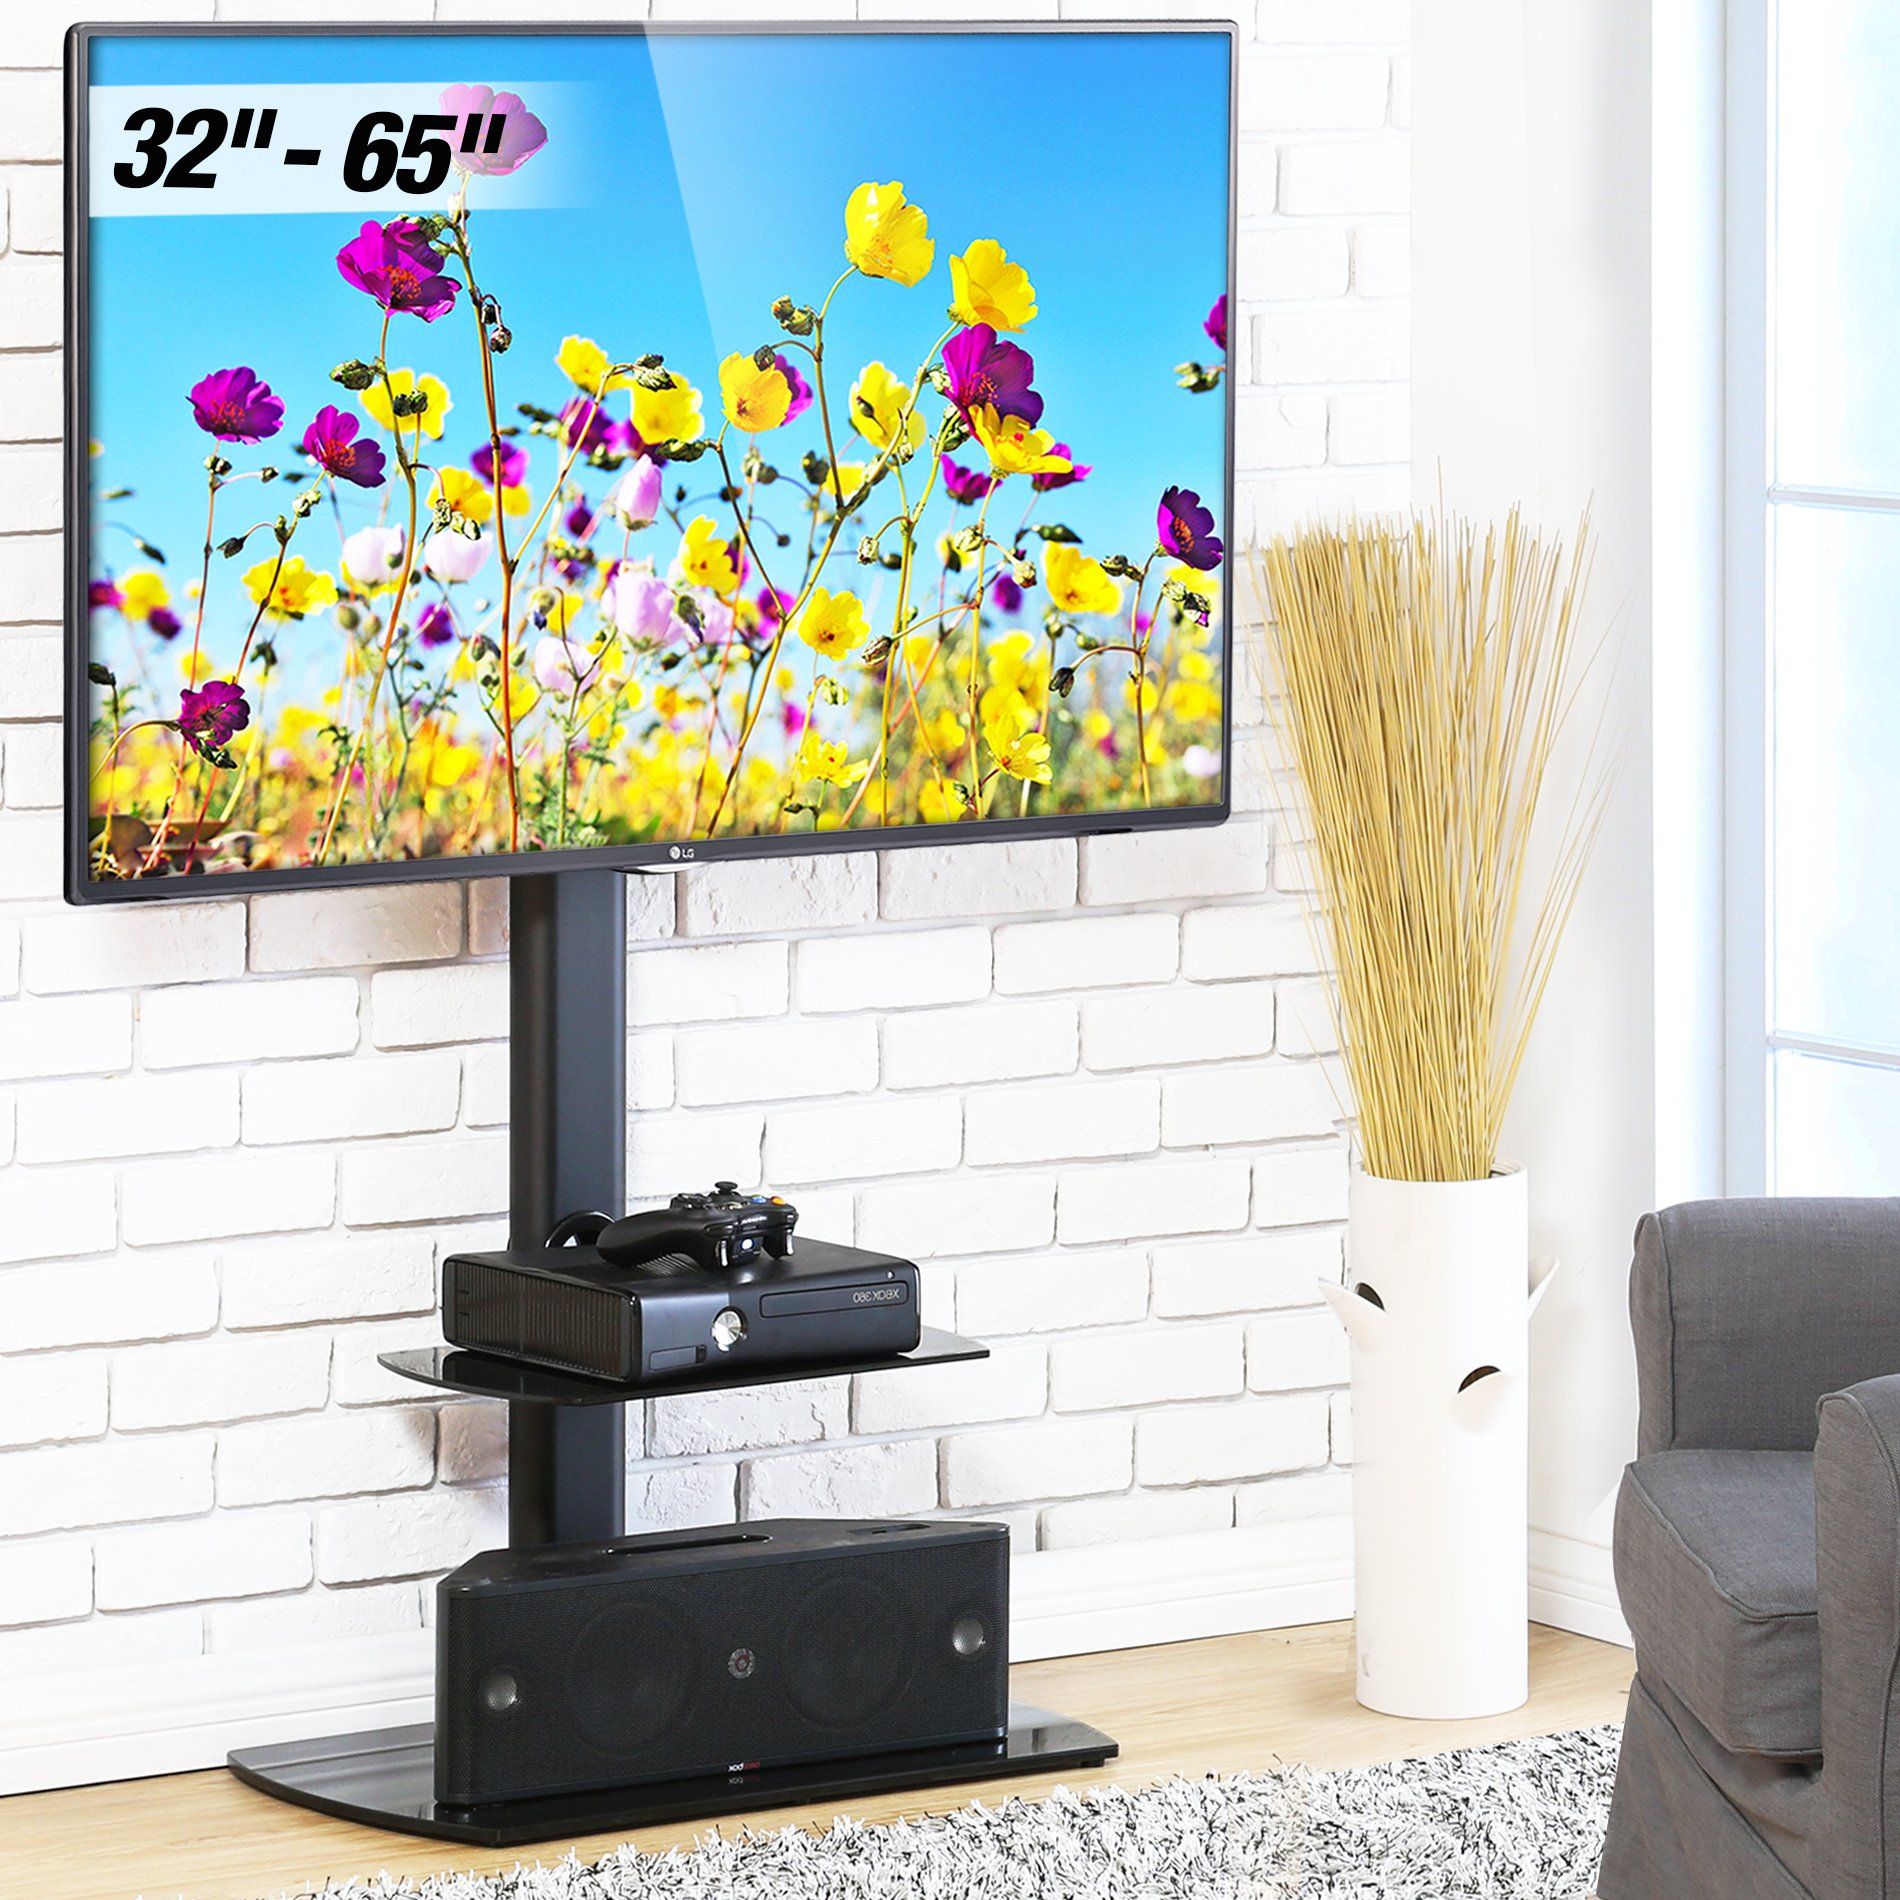 Fitueyes Floor TV Stand with Swivel Mount Height Adjustable Bracket VESA patterns up to 600mm x 400mm for 32 to 65 inch LCD, LED Oled TVs TT206502GB